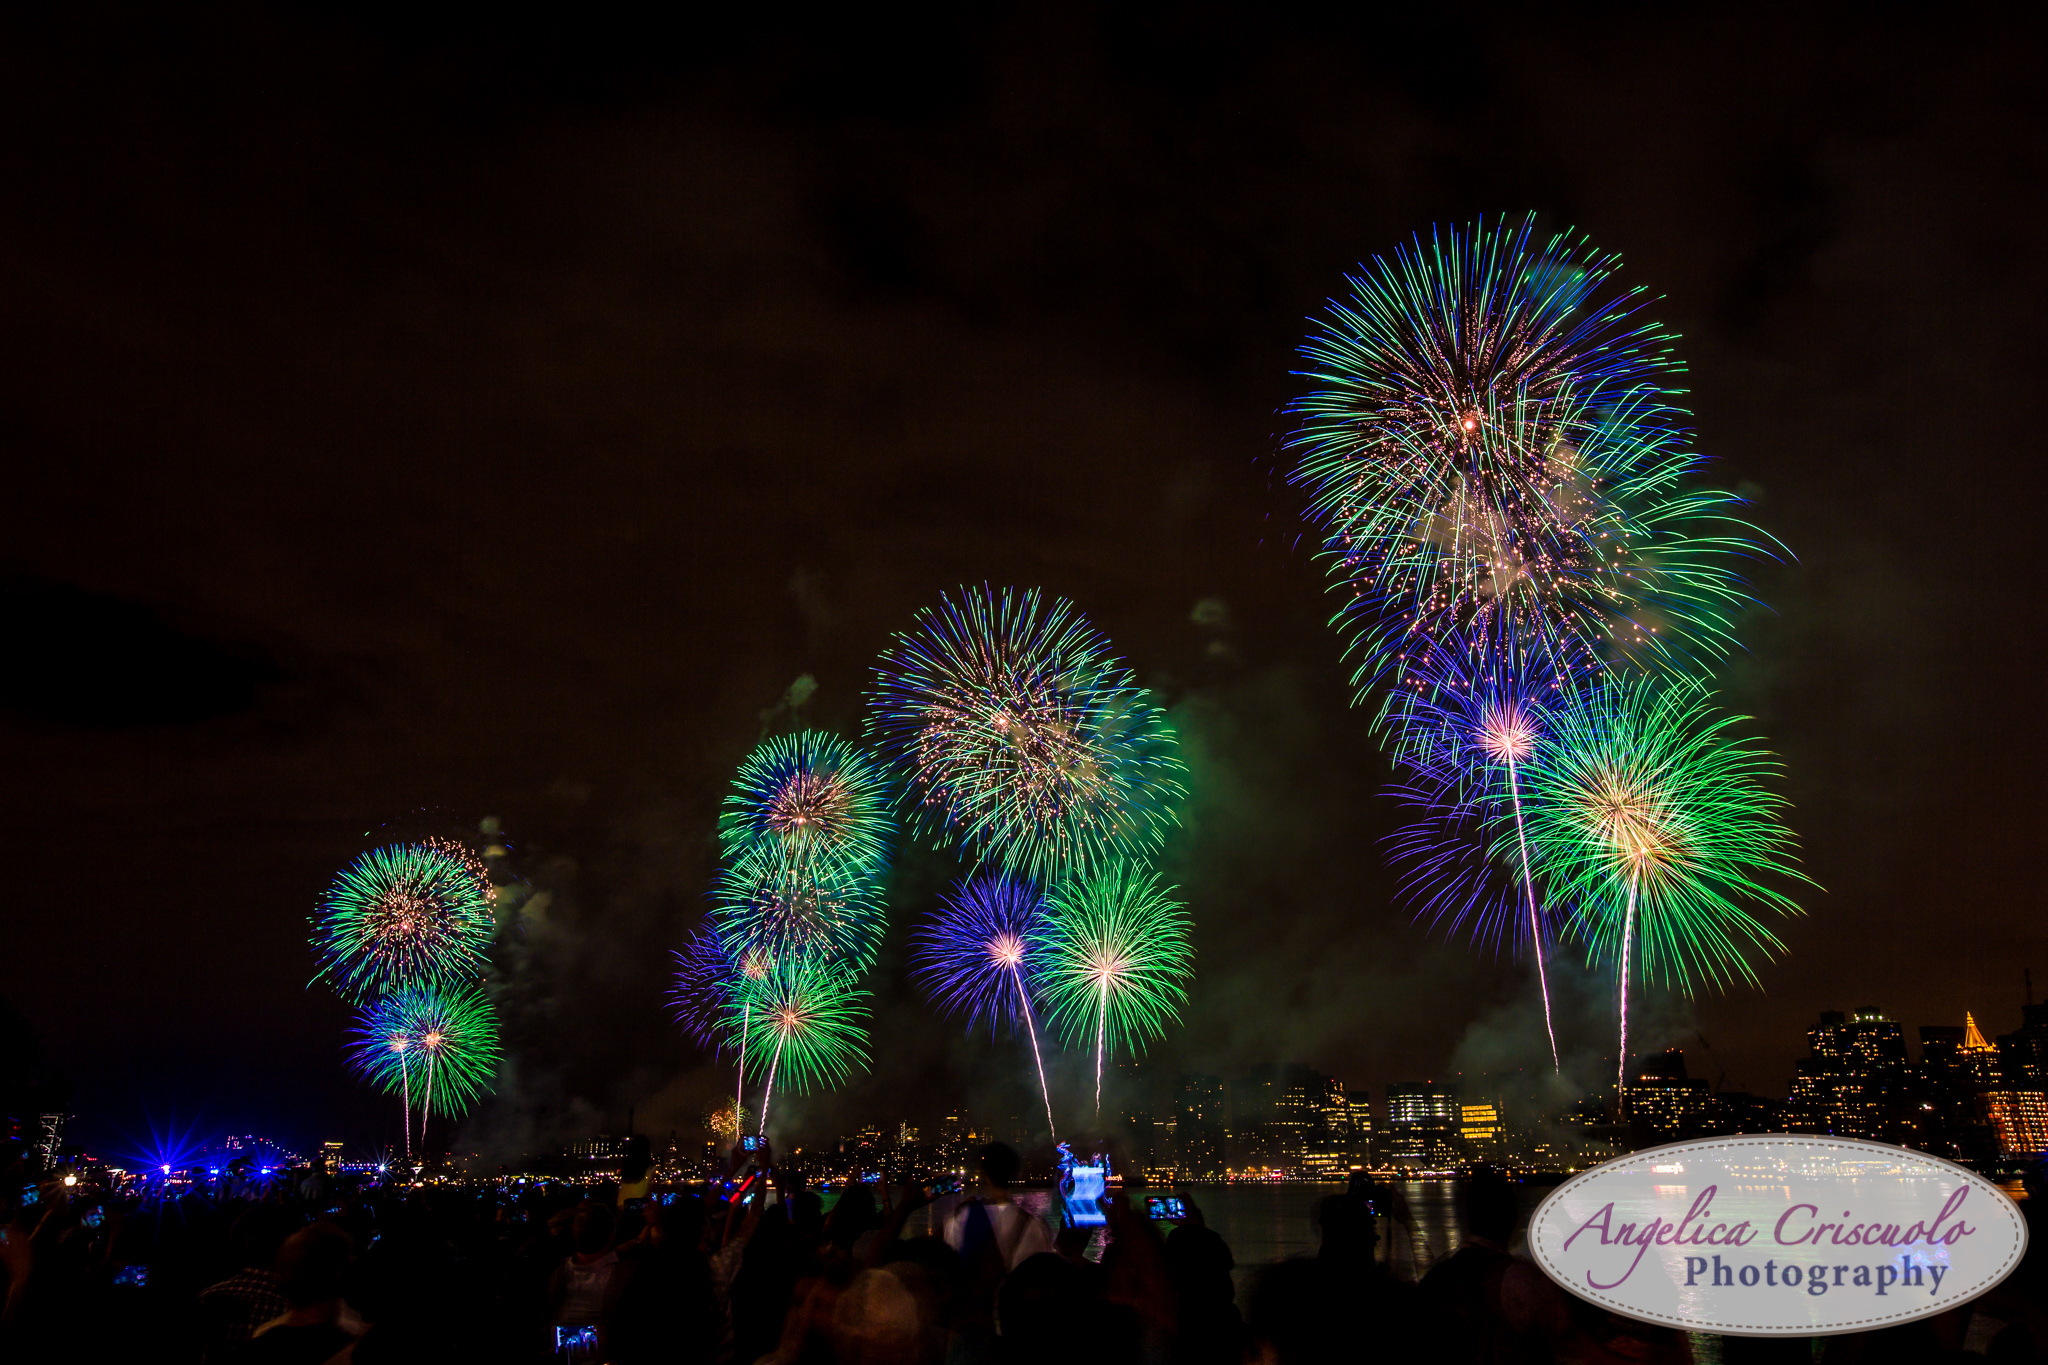 Best Wedding Photographer Macy's 4th of July Fireworks 2015